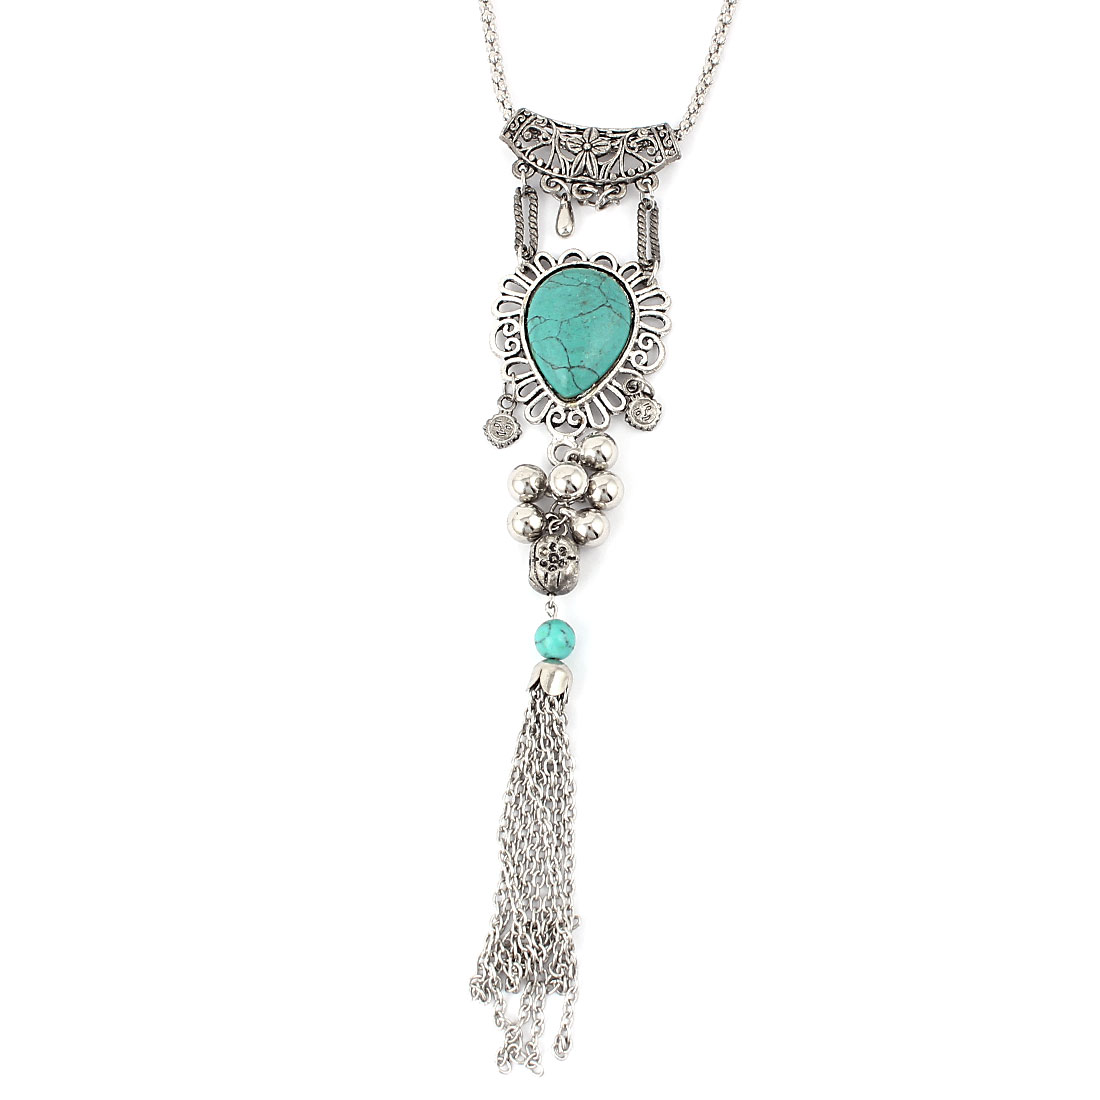 Lady Metal Chain Tassel Turquoise Pendant Fashion Jewelry Necklace Silver Tone